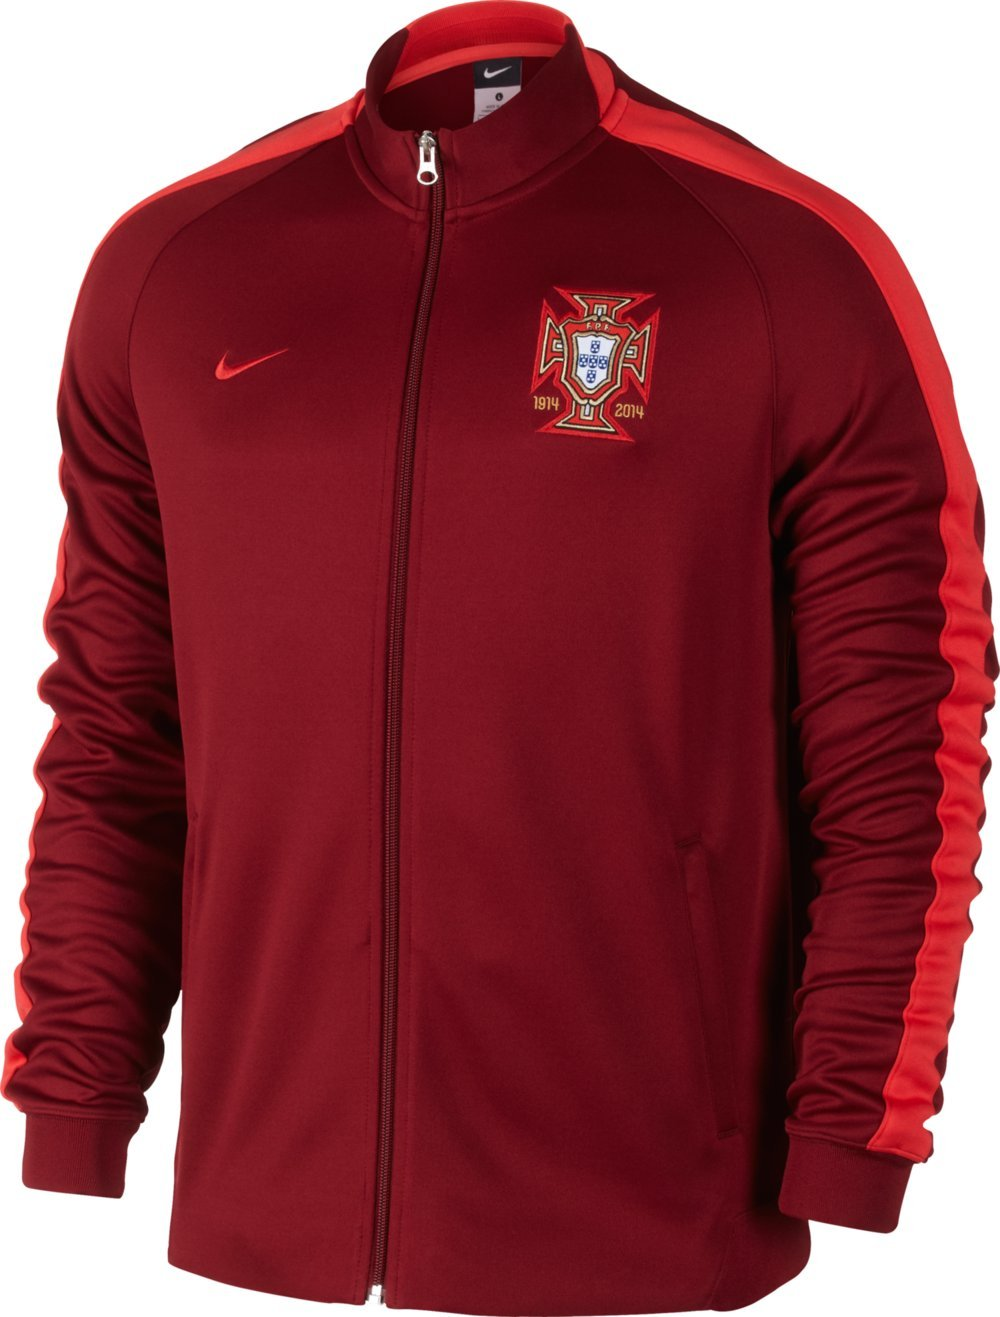 2014-15 Portugal Nike Authentic N98 Jacket (Red) 589860-677-S